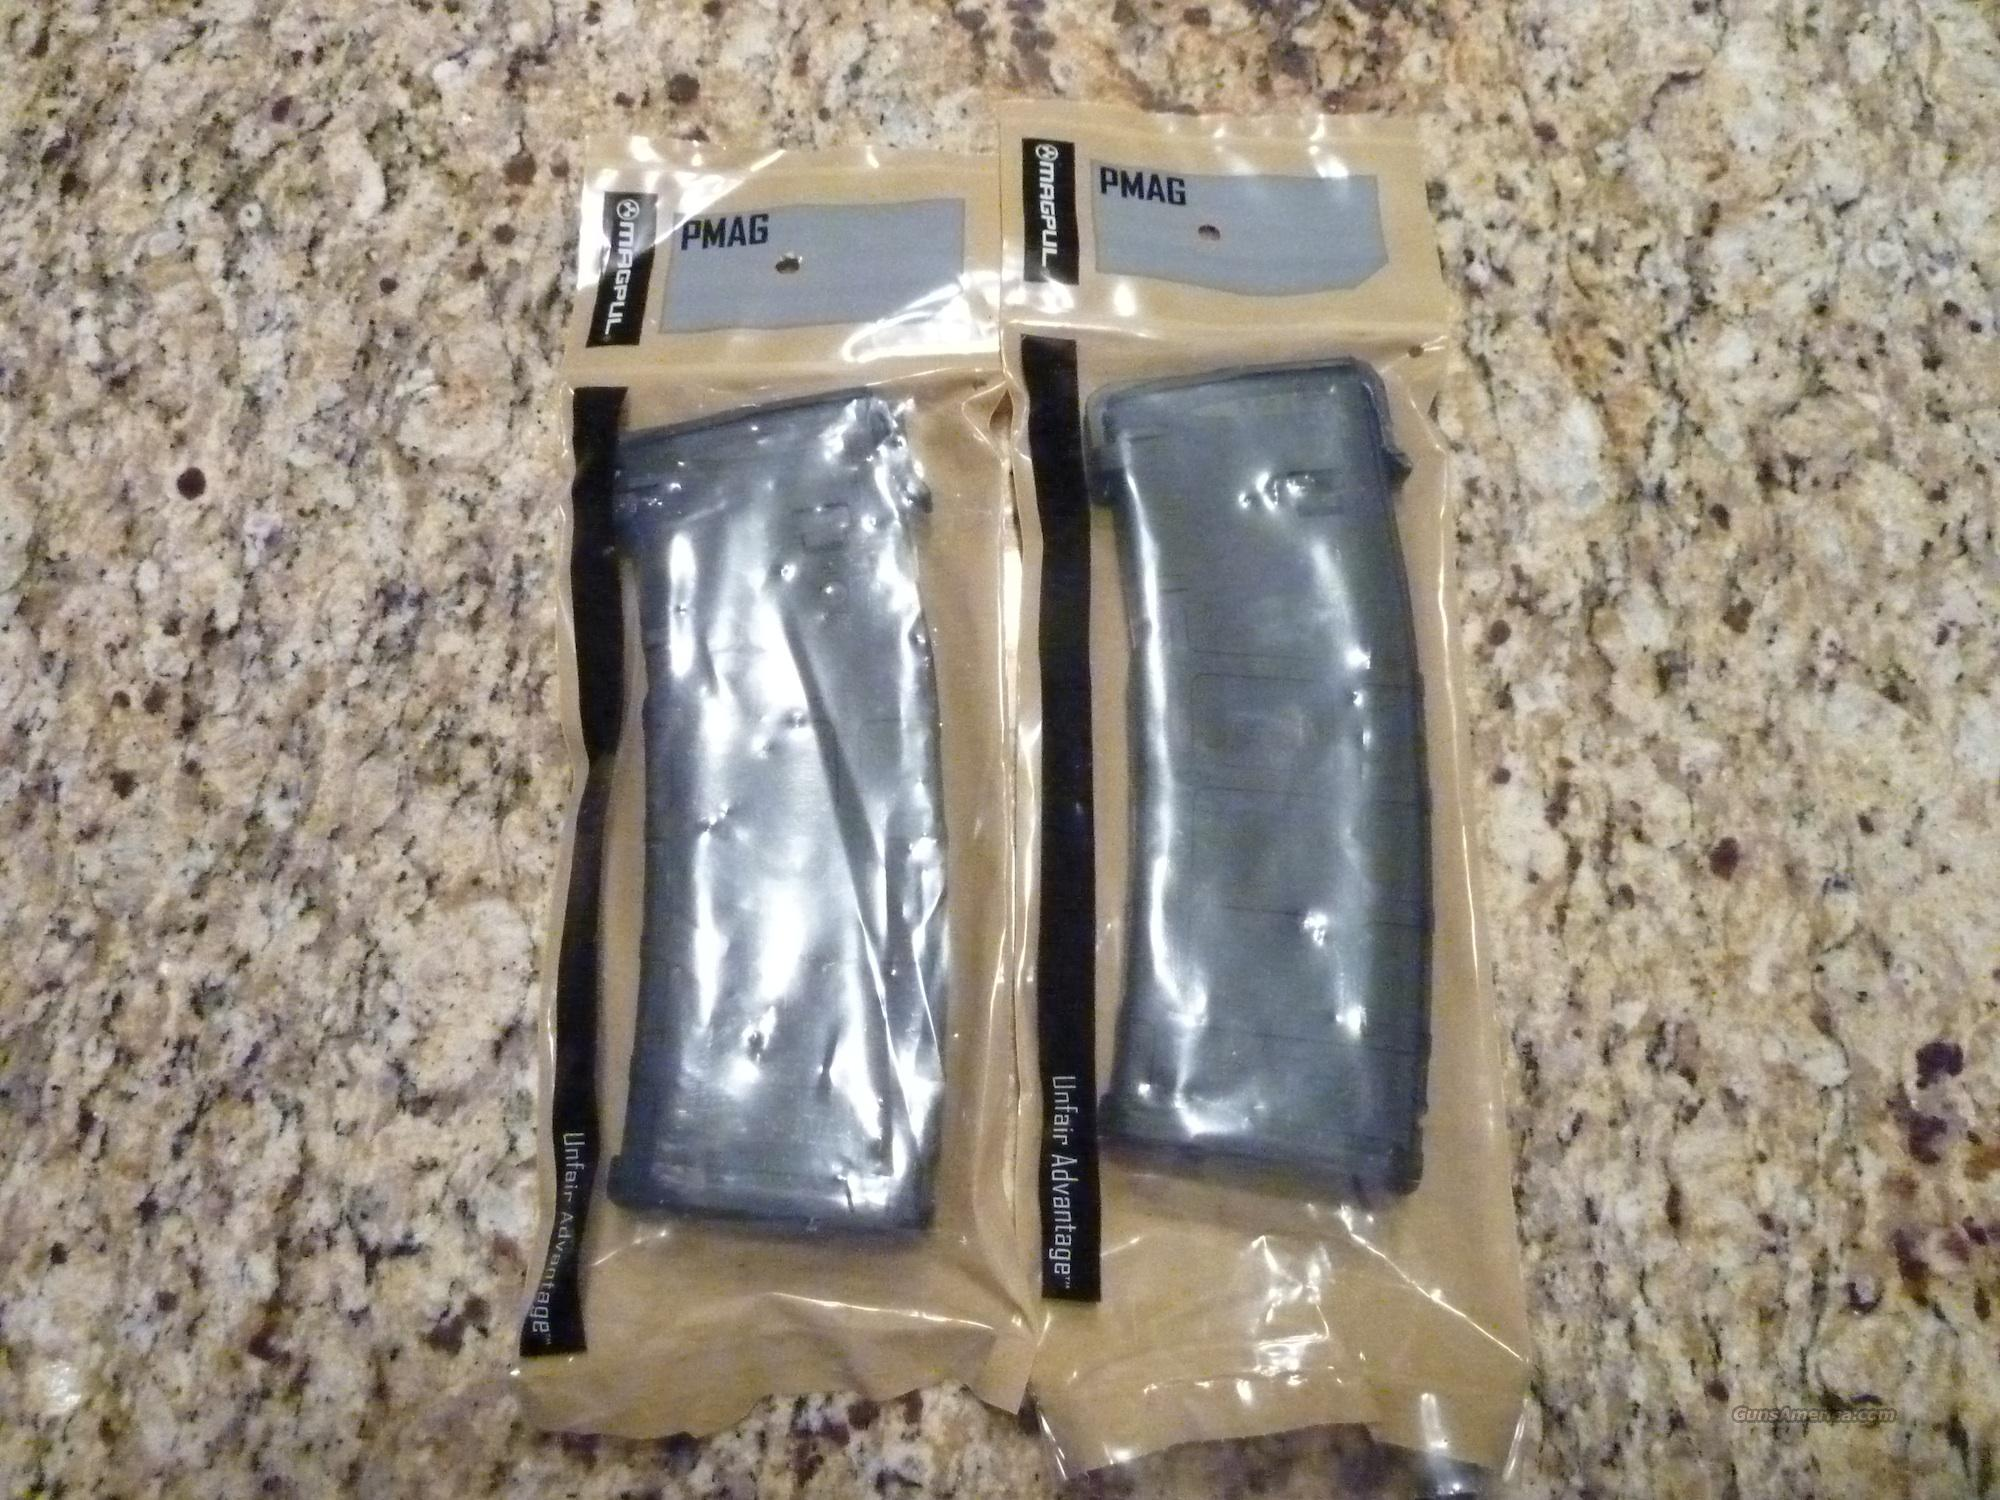 2 (Two) NIP BLACK MAGPUL PMAG 30 round mag  Non-Guns > Magazines & Clips > Rifle Magazines > AR-15 Type